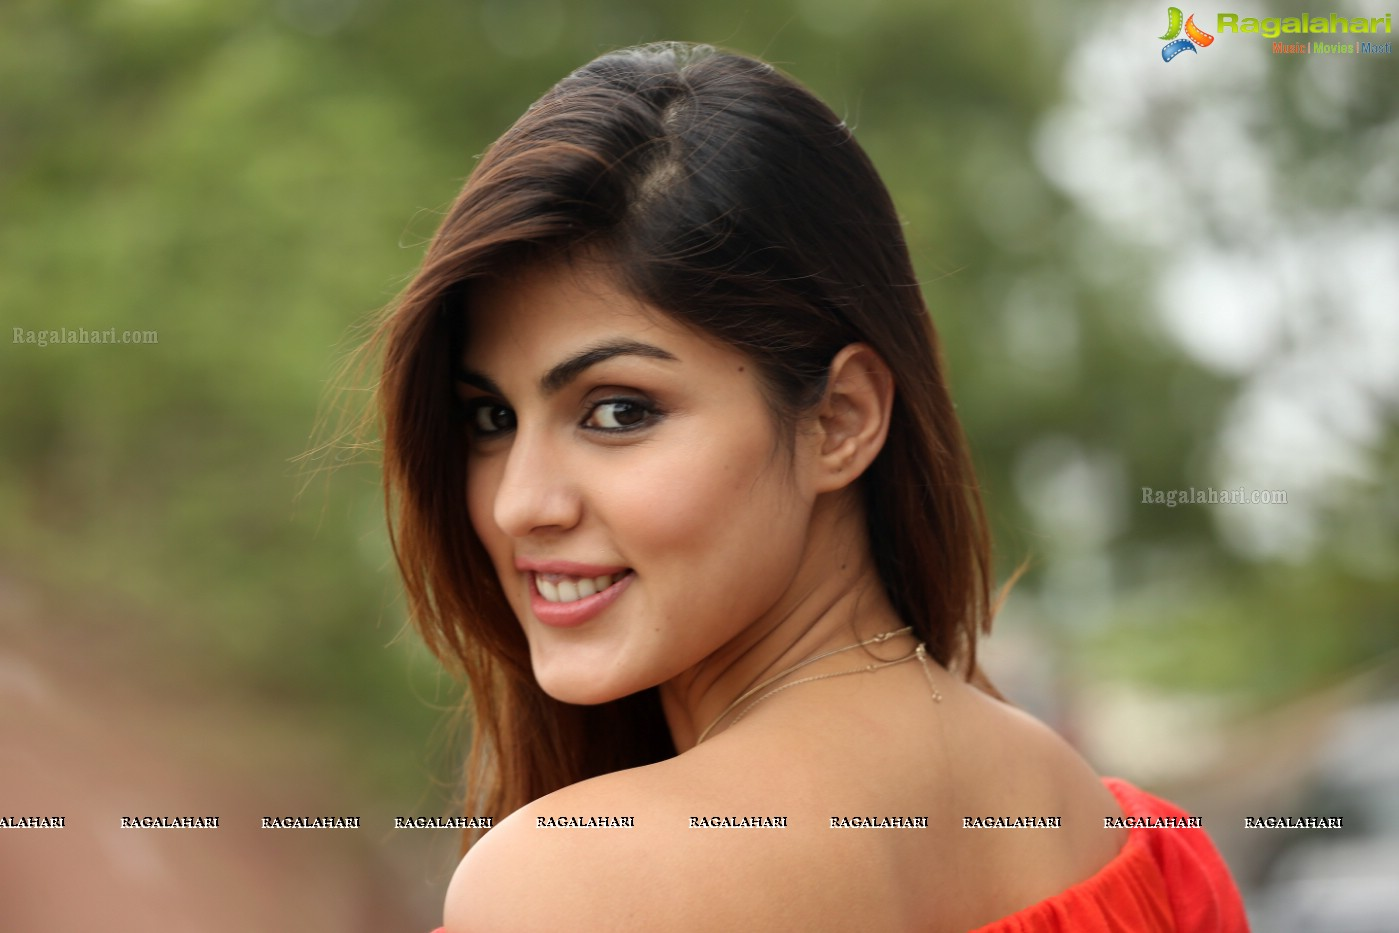 Telugu All Heroines Pictures Wallpapers: Rhea Chakraborty (Posters) Image 123